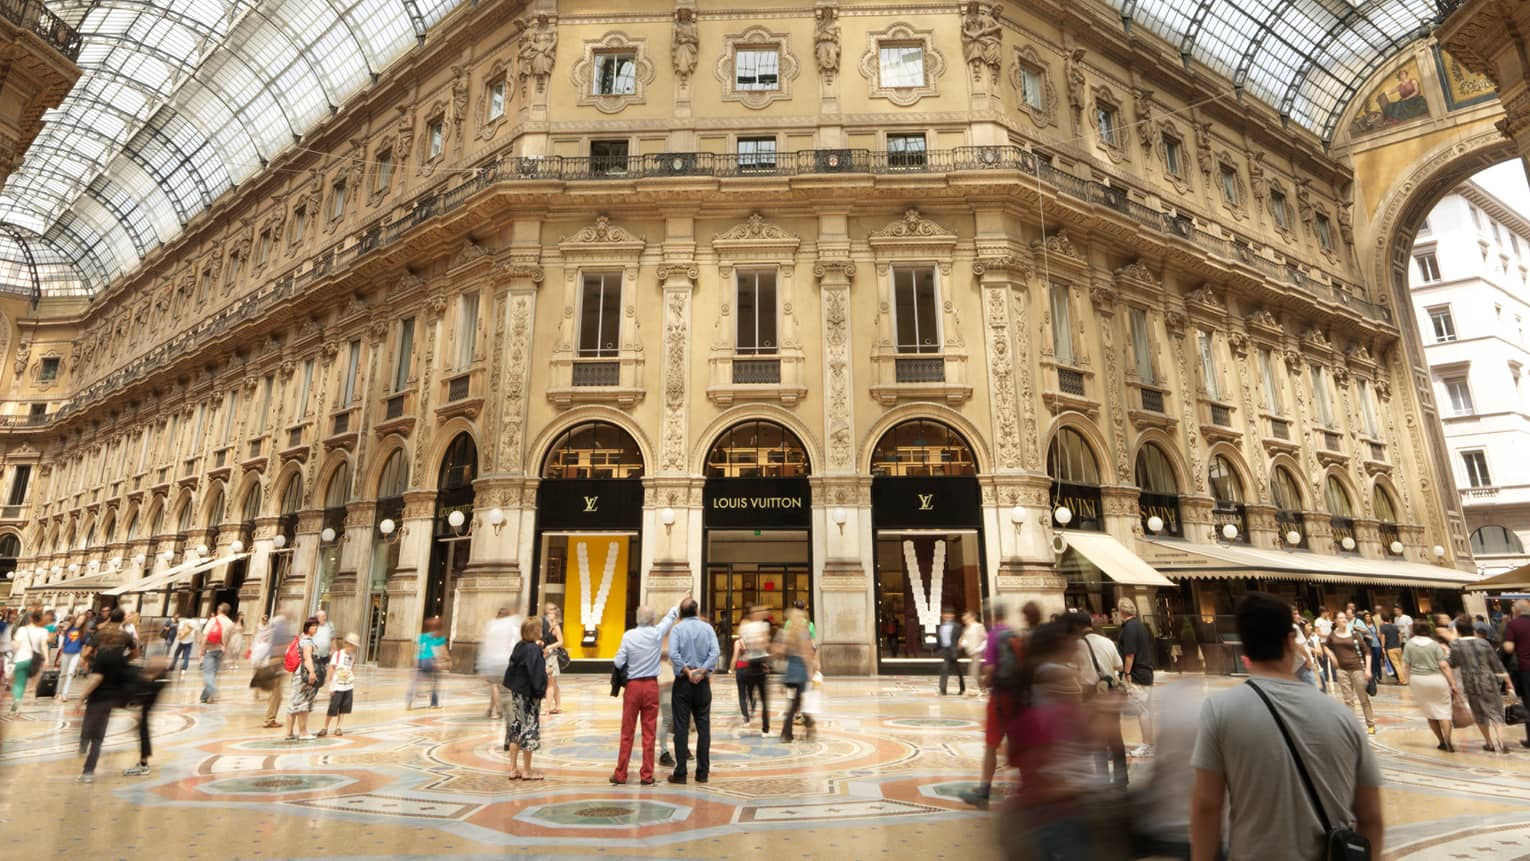 Shoppers gathered in  historic Galleria Vittorio Emanuele building with soaring ceilings, shops